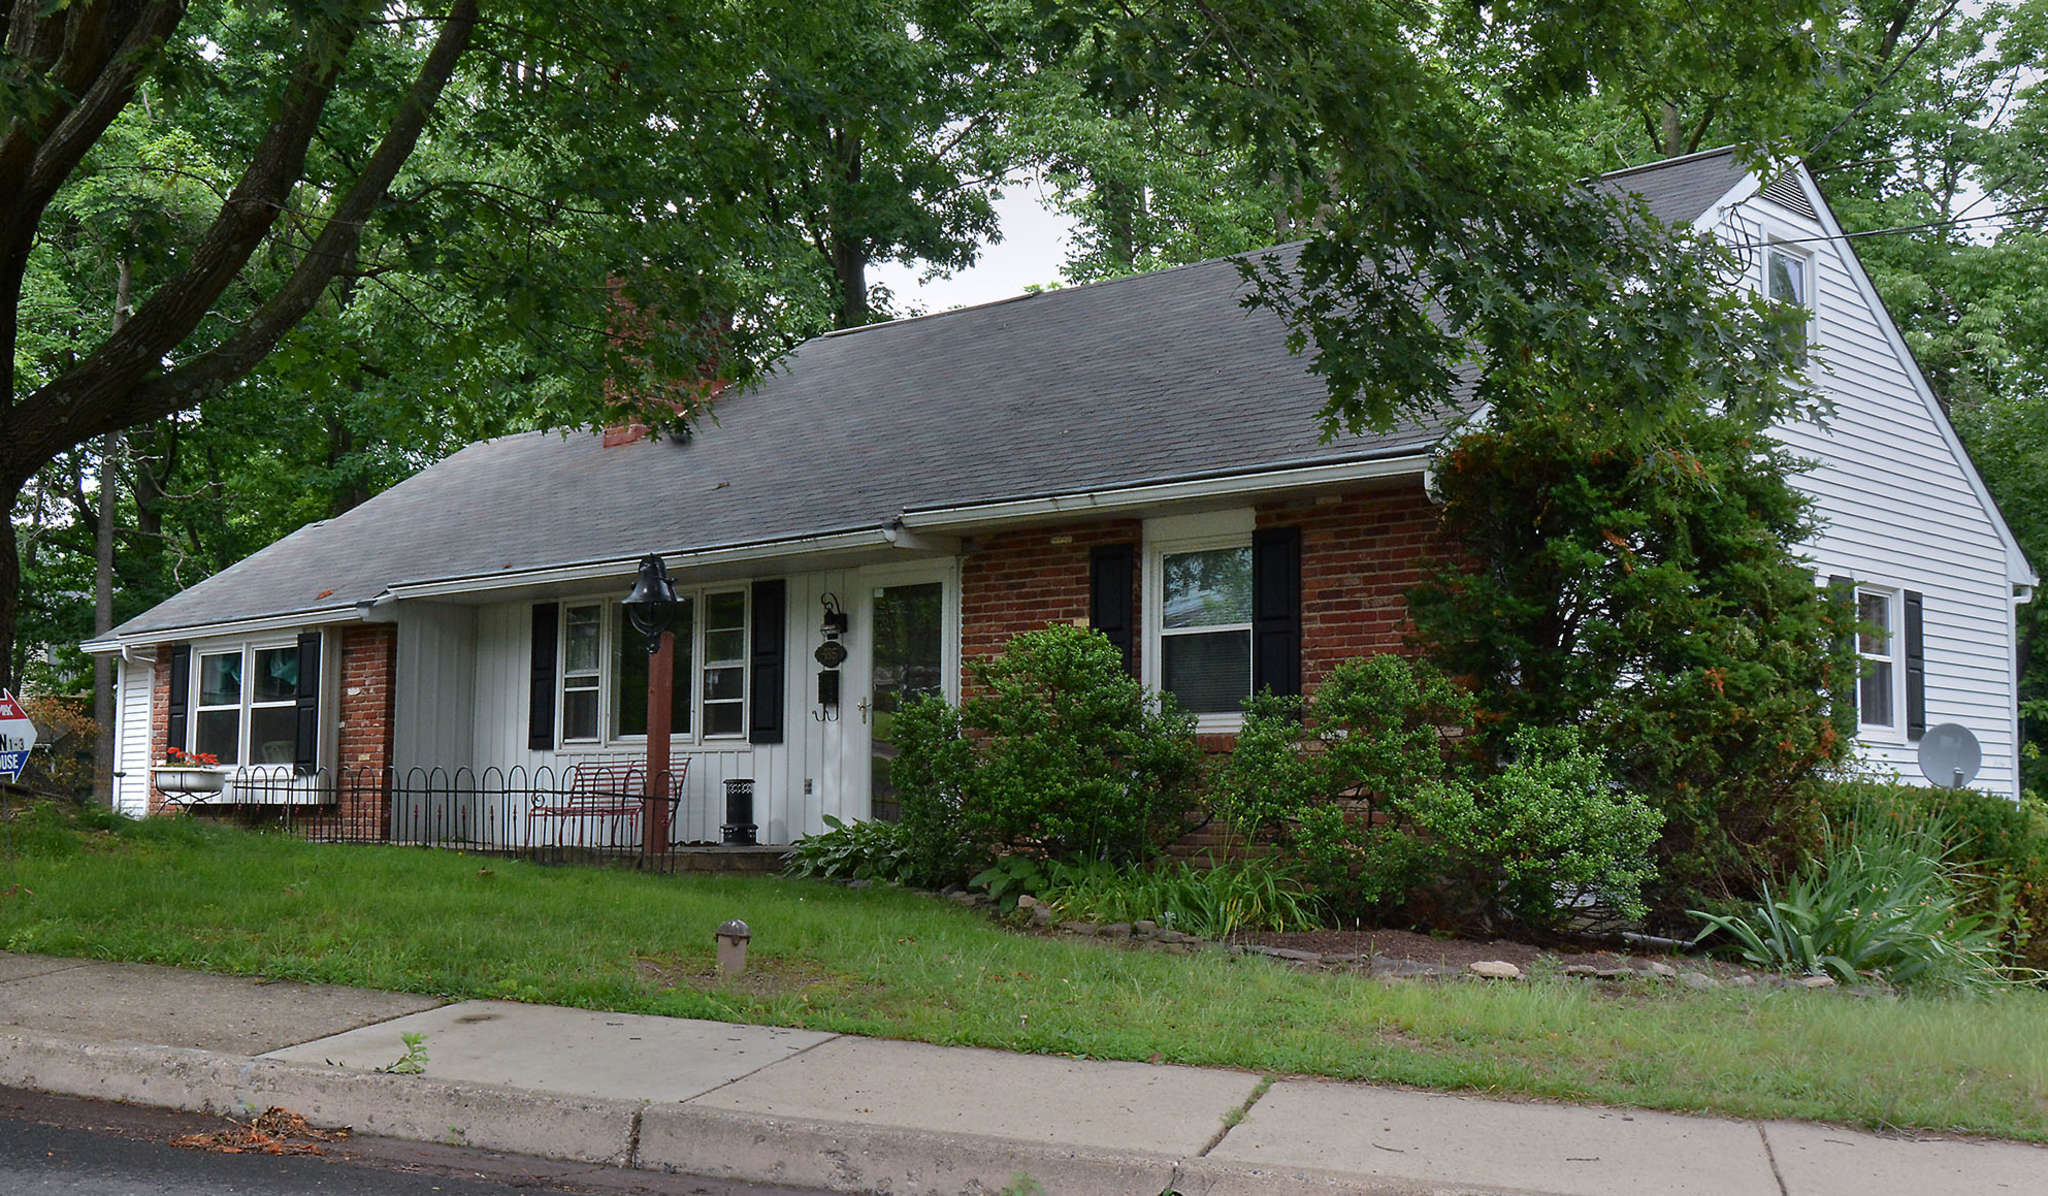 Located at 485 Washington Ave., this brick-accented home on the urban outskirts is selling for $279,900.